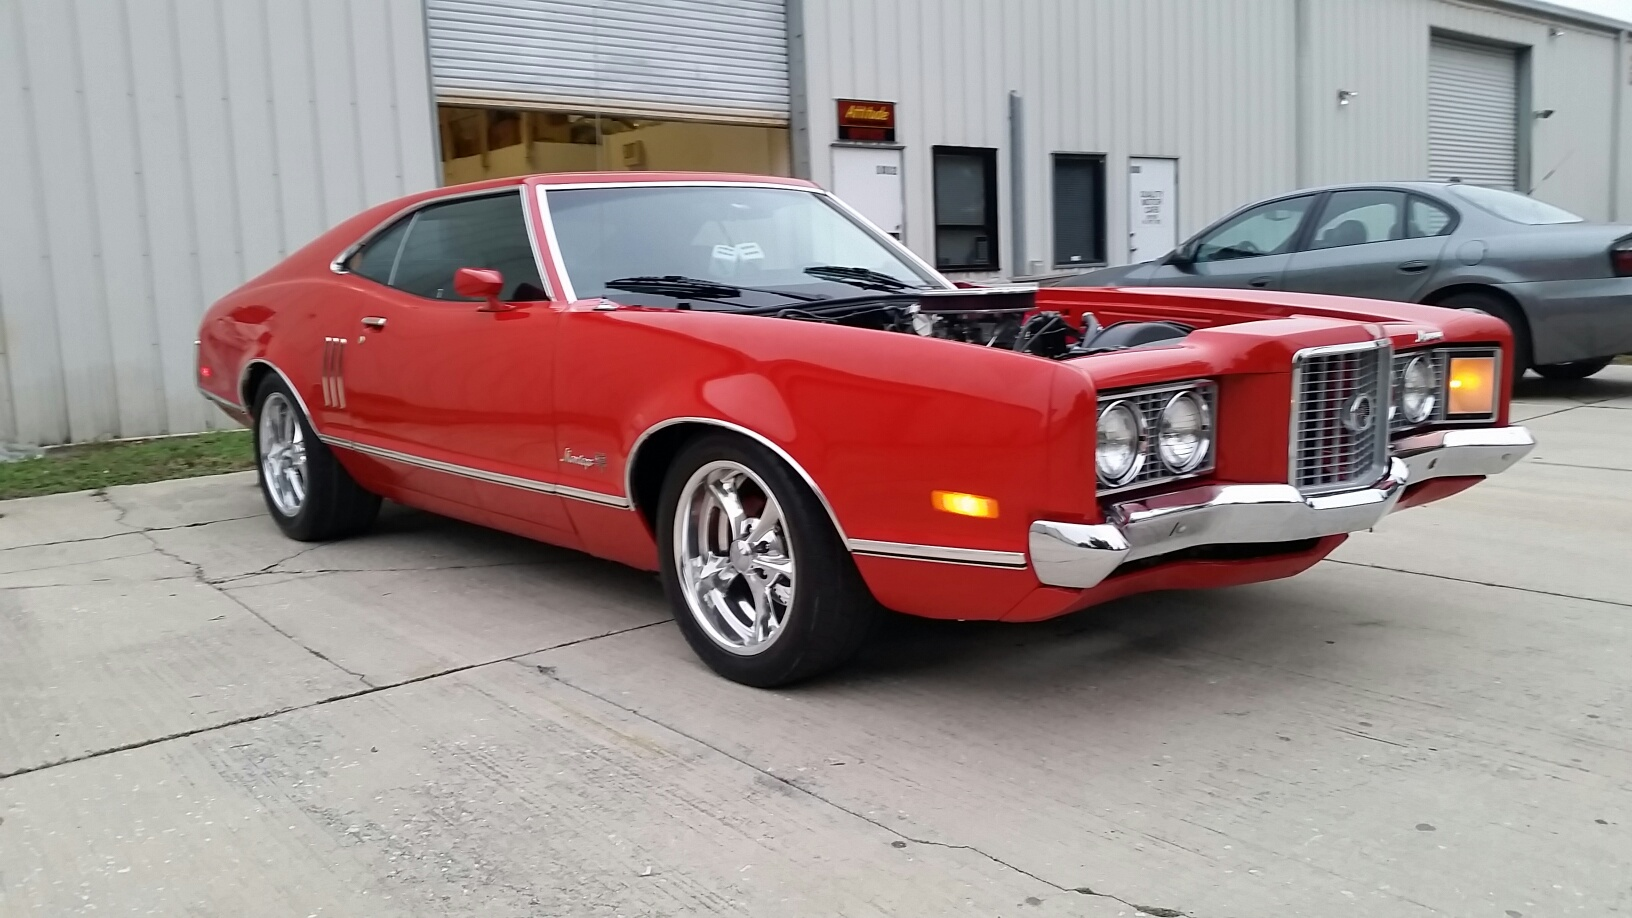 1972 mercury montego n code 429 restomod motorcycle custom - Click For Bigger Pic